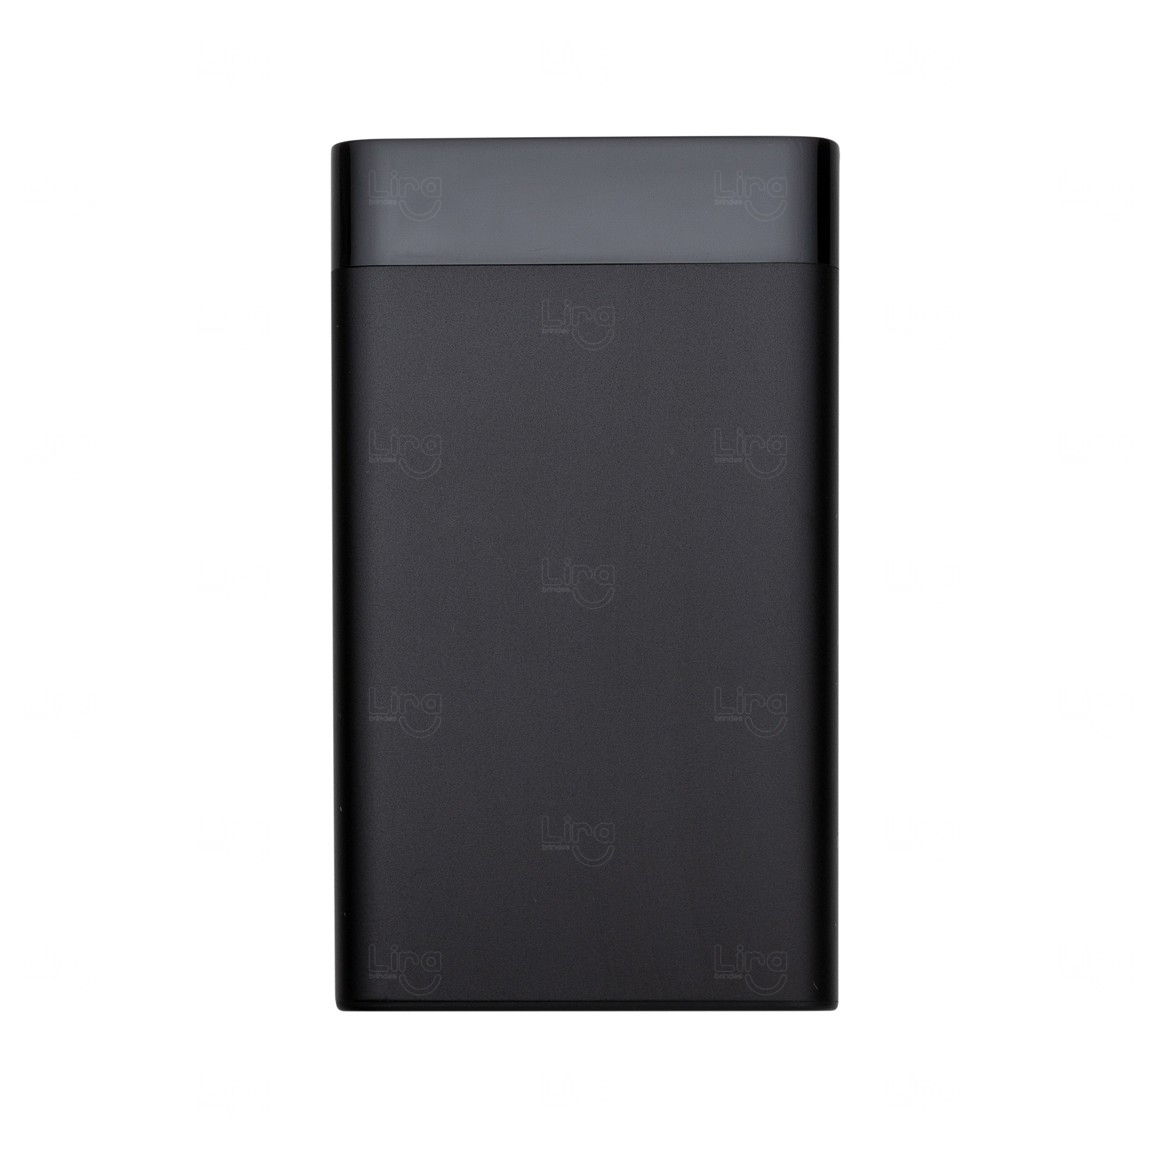 Bateria Power Bank Personalizado Visor Digital - 6.000 mAh Preto